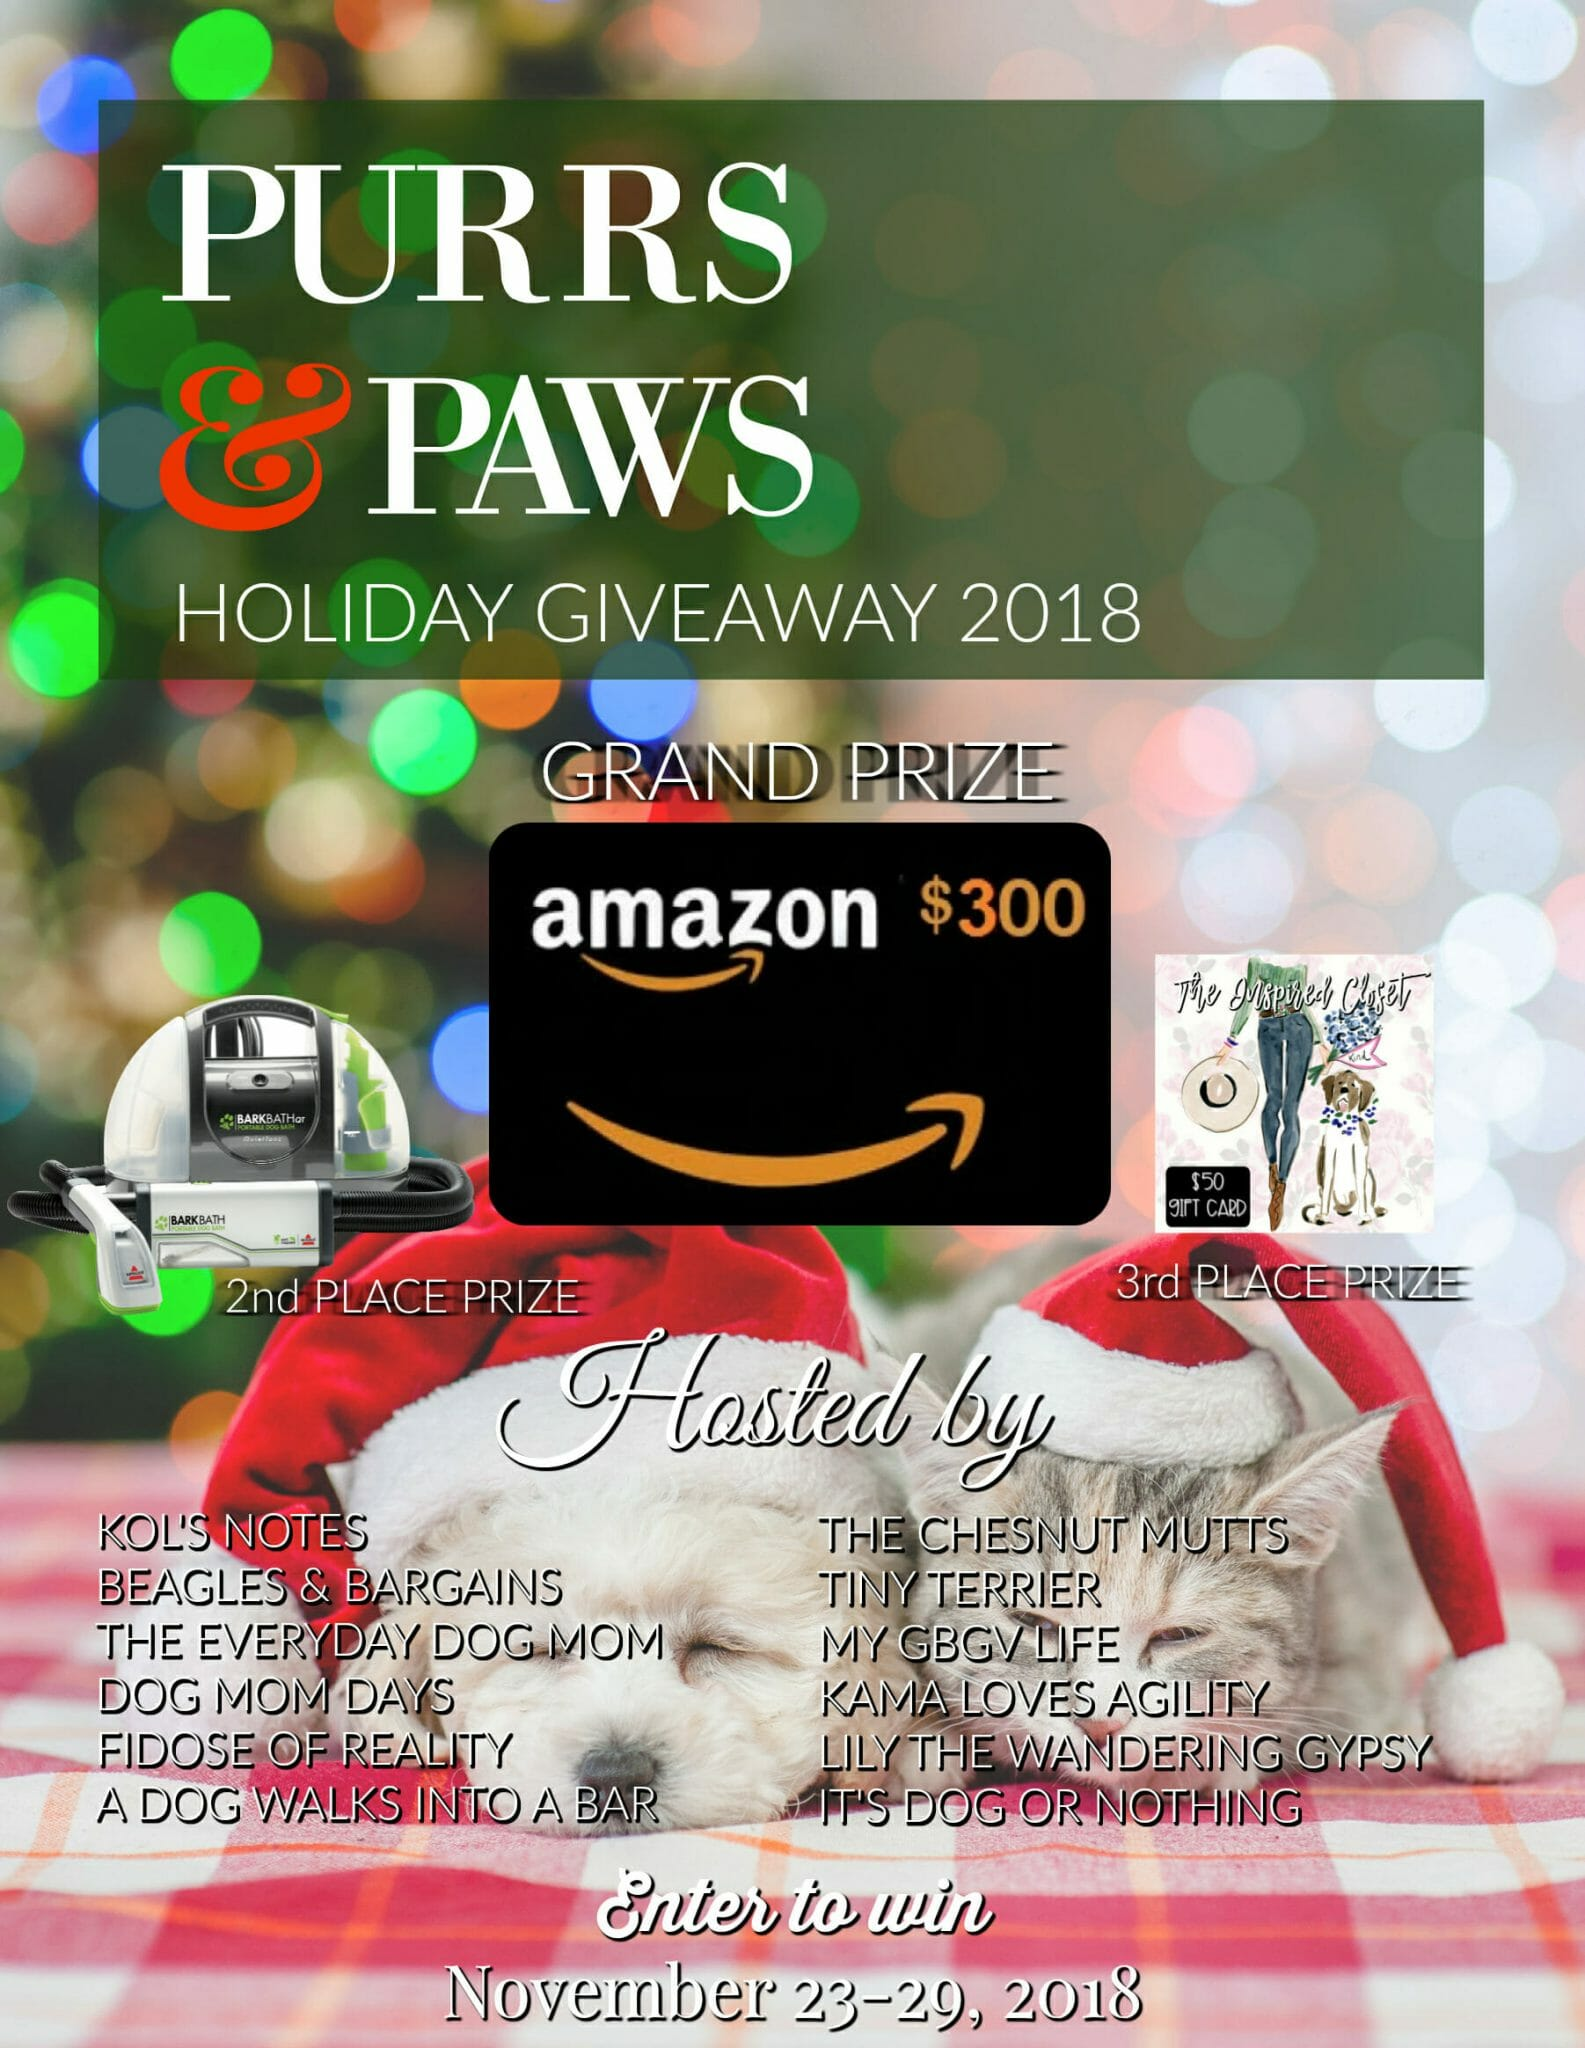 It's that time of year! Enter to win $500 in prizes in the Purrs & Paws Holiday giveaway on It's Dog or Nothing!